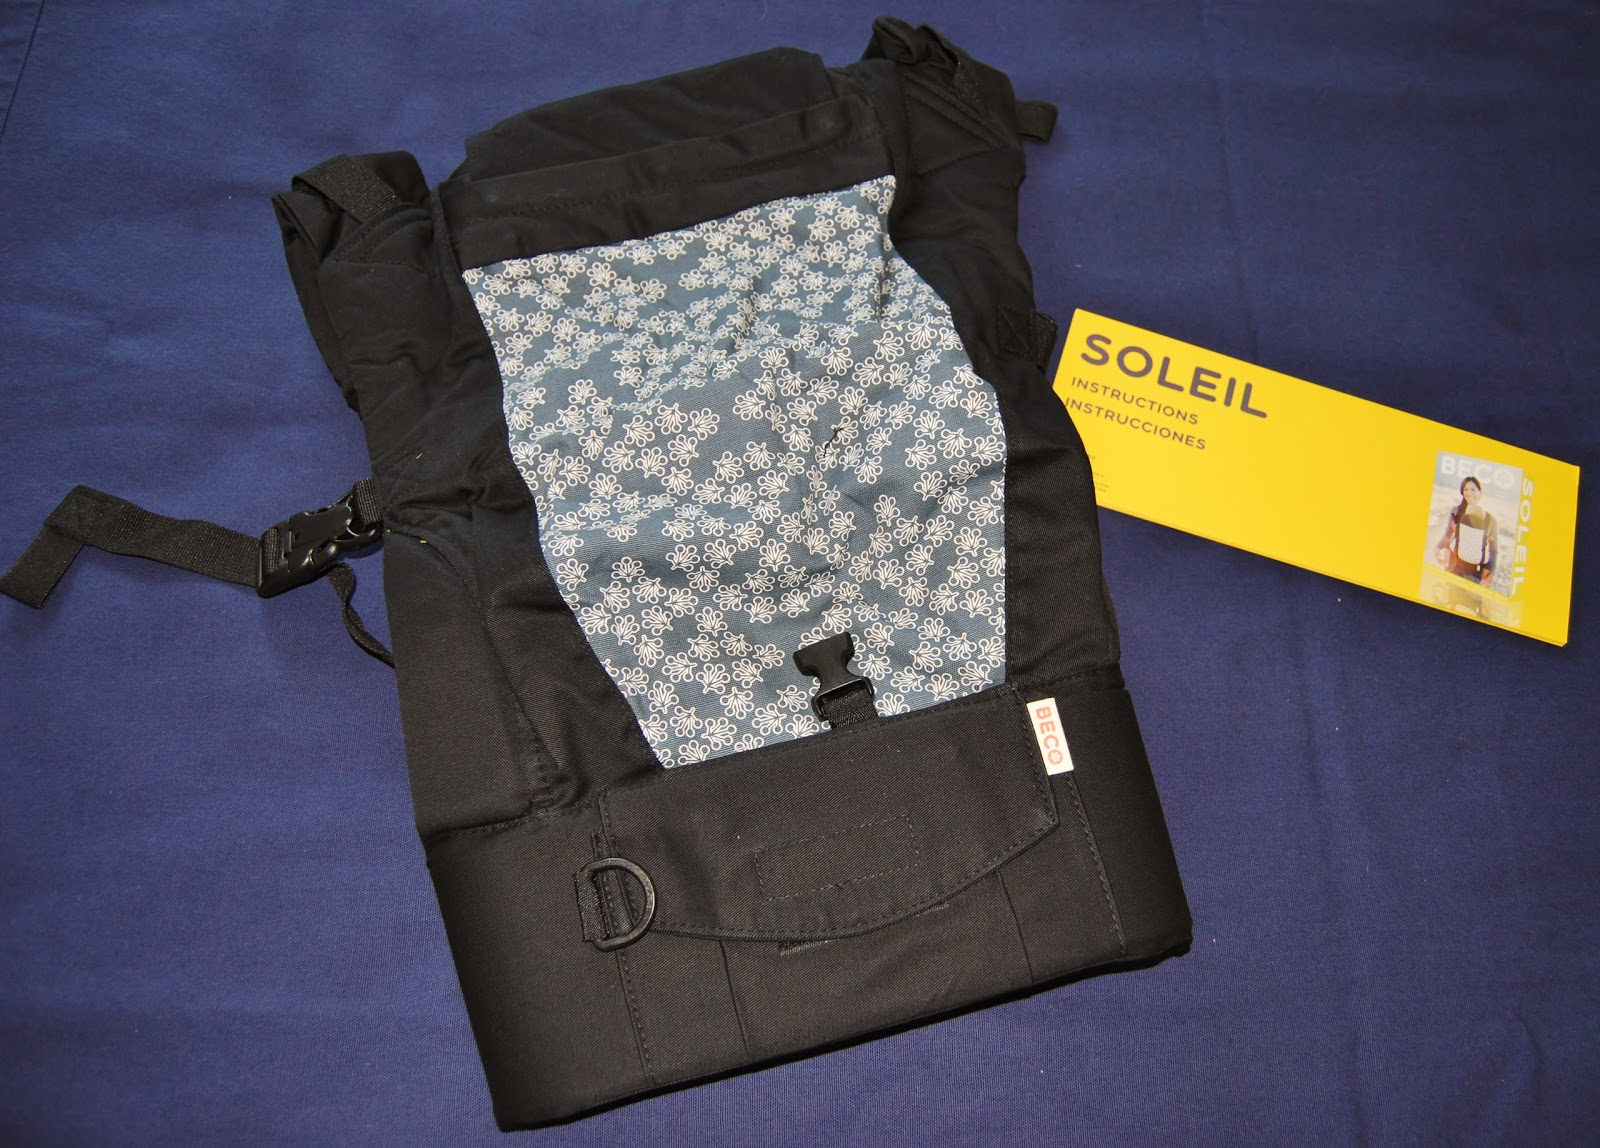 4dab37aa746 ... Beco Soleil carrier that faces out when you are wearing your baby. This  is the pattern that people are going to see when they see you wearing your  baby ...